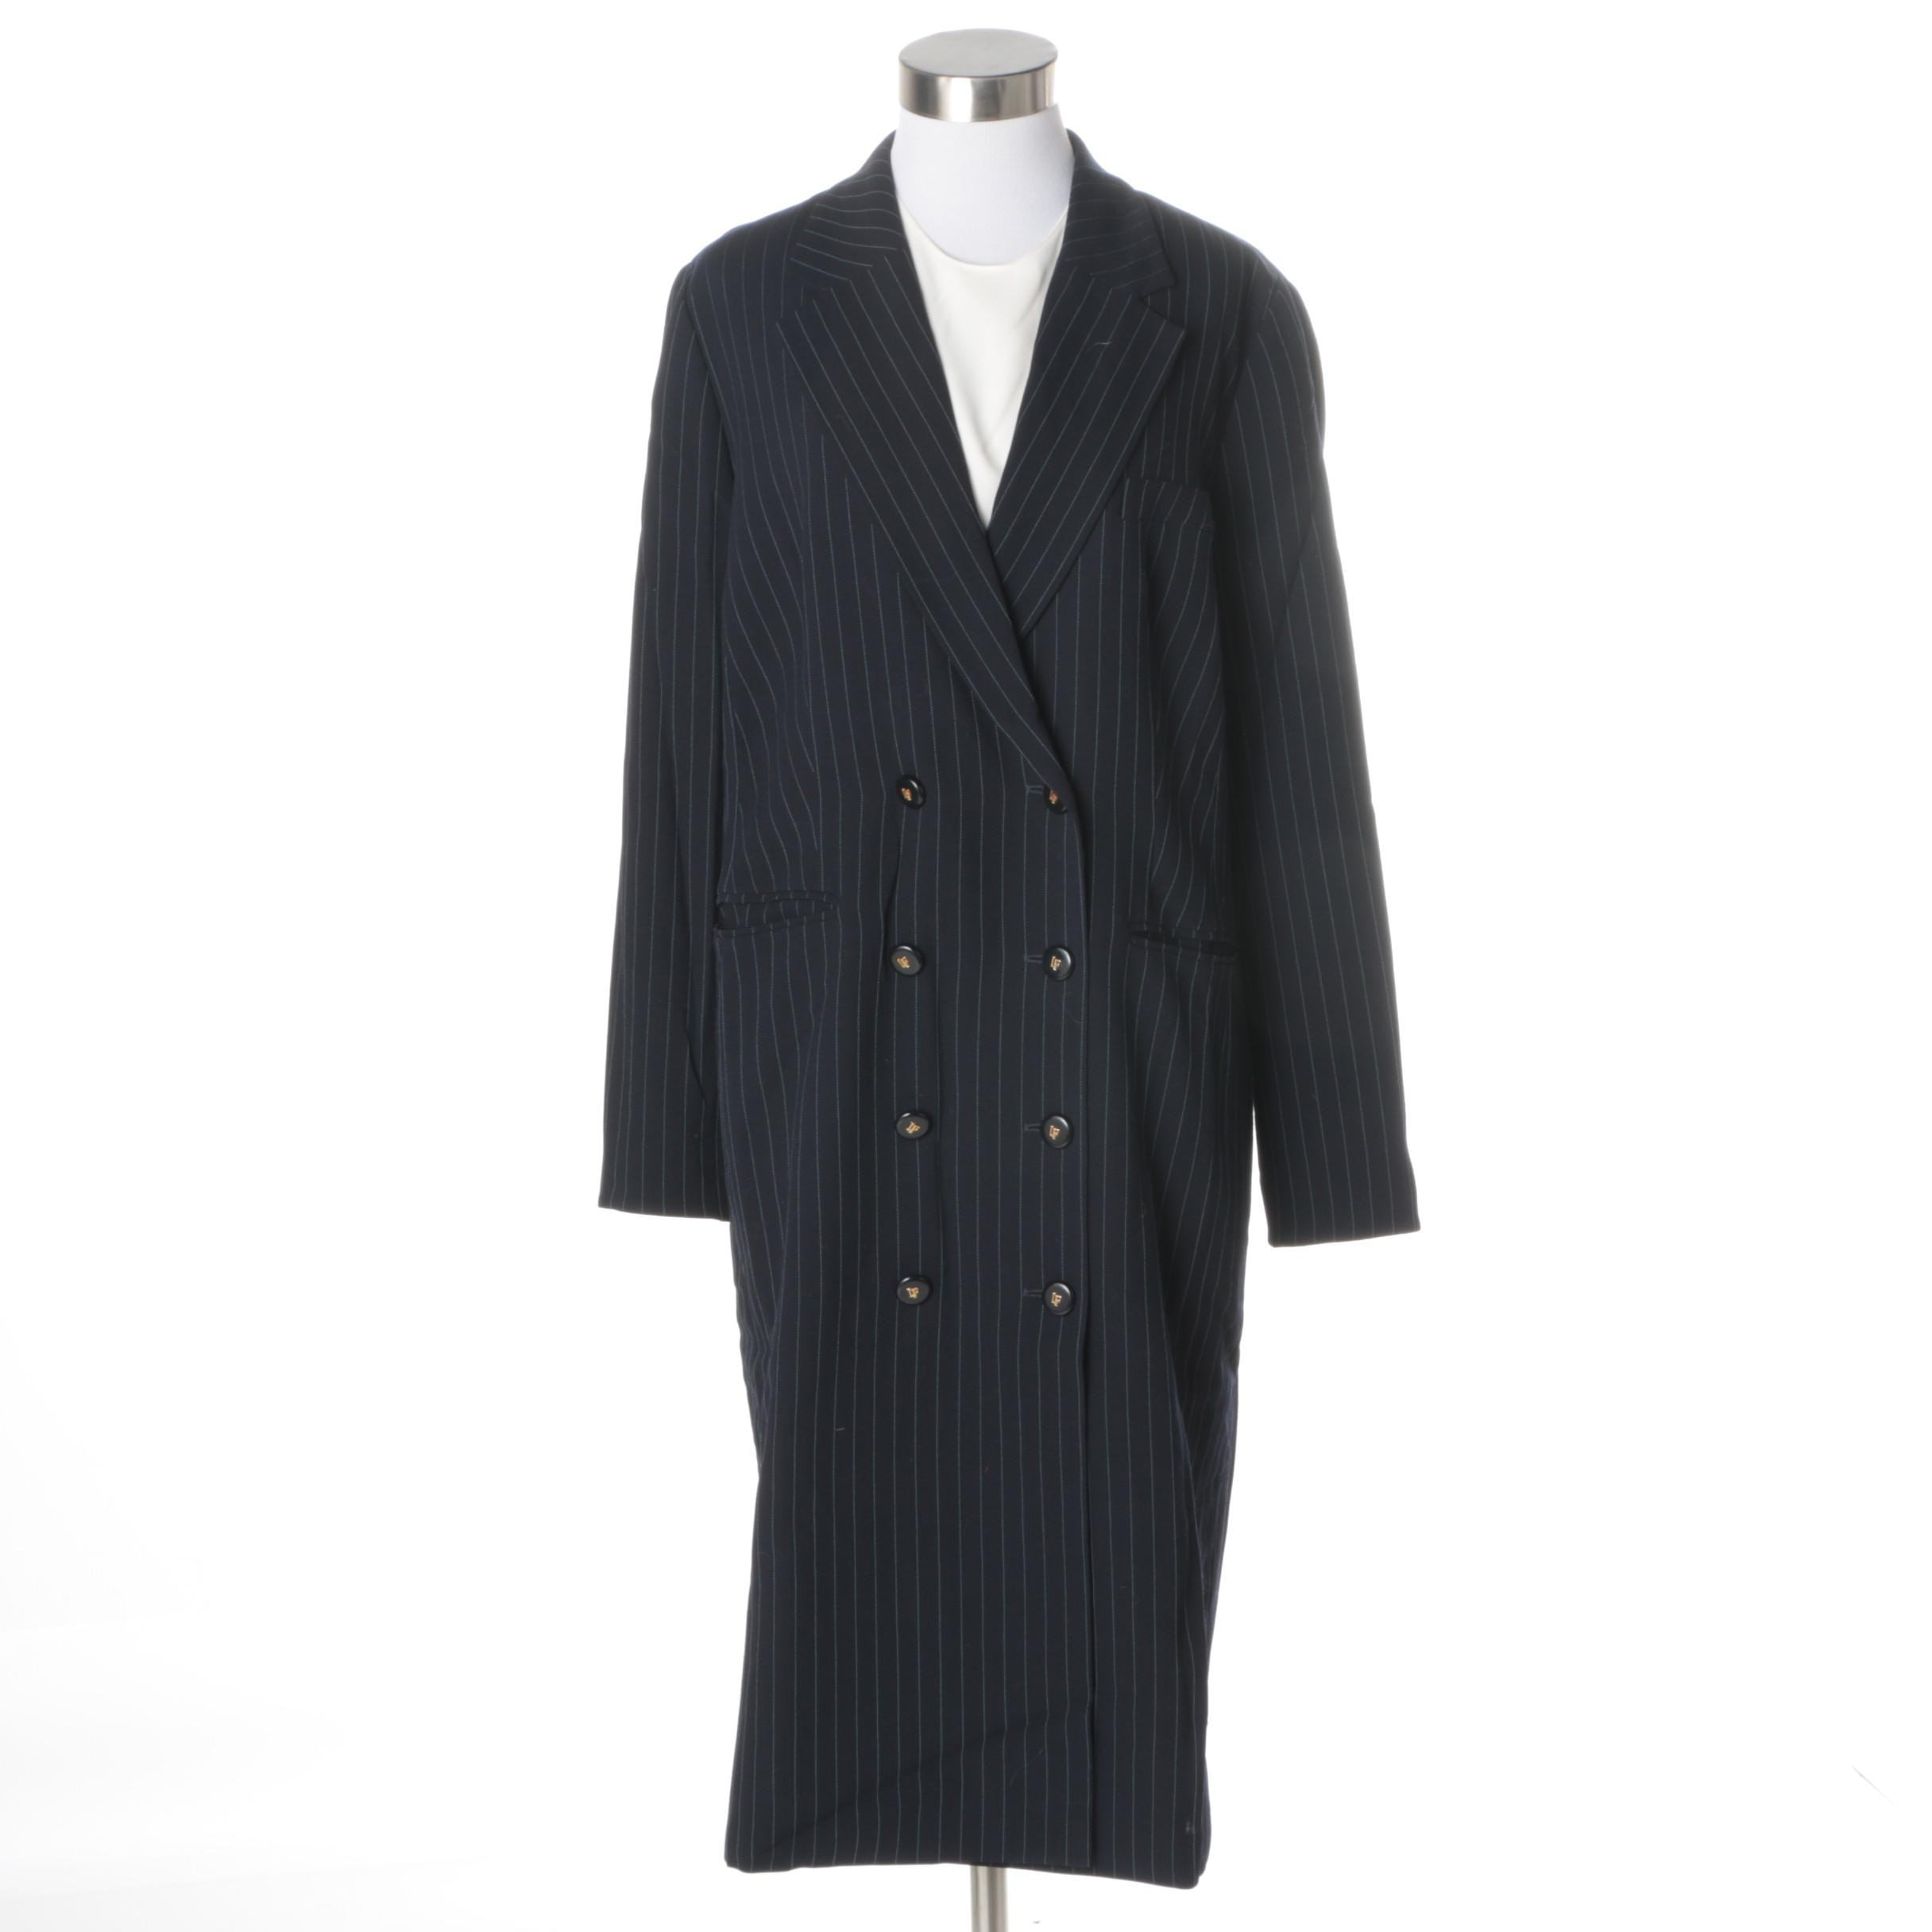 Louis Feraud Suit Dress